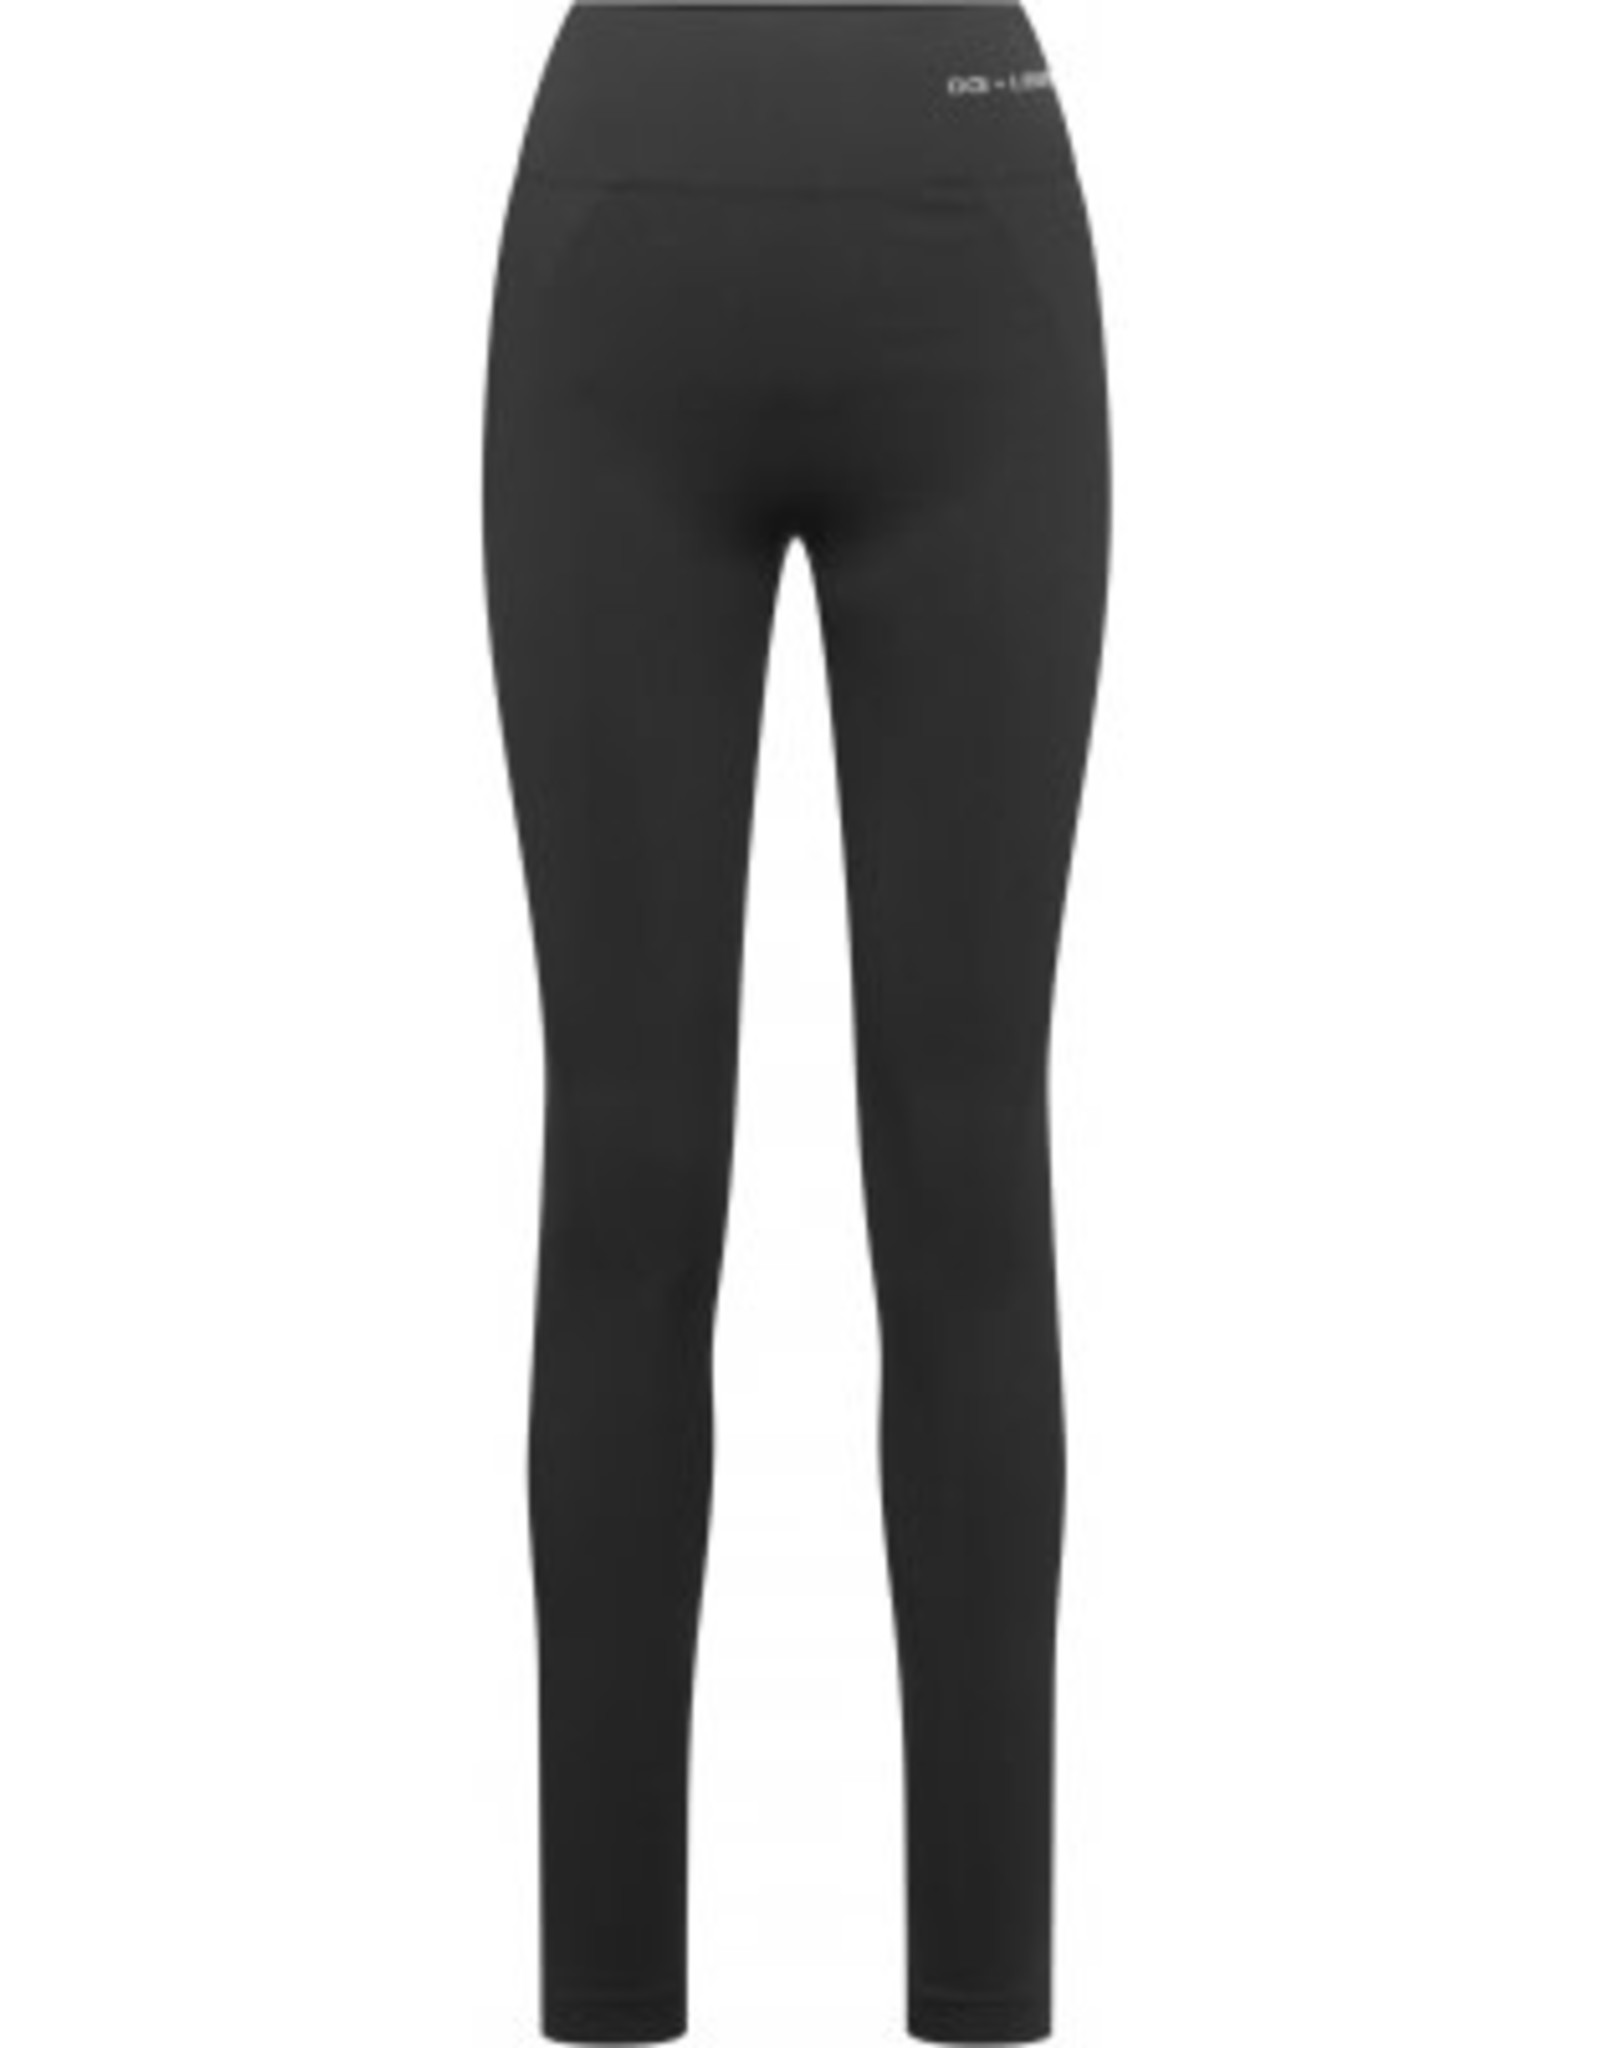 Gai&Lisva Shanti (yoga) legging Dark Charcoal